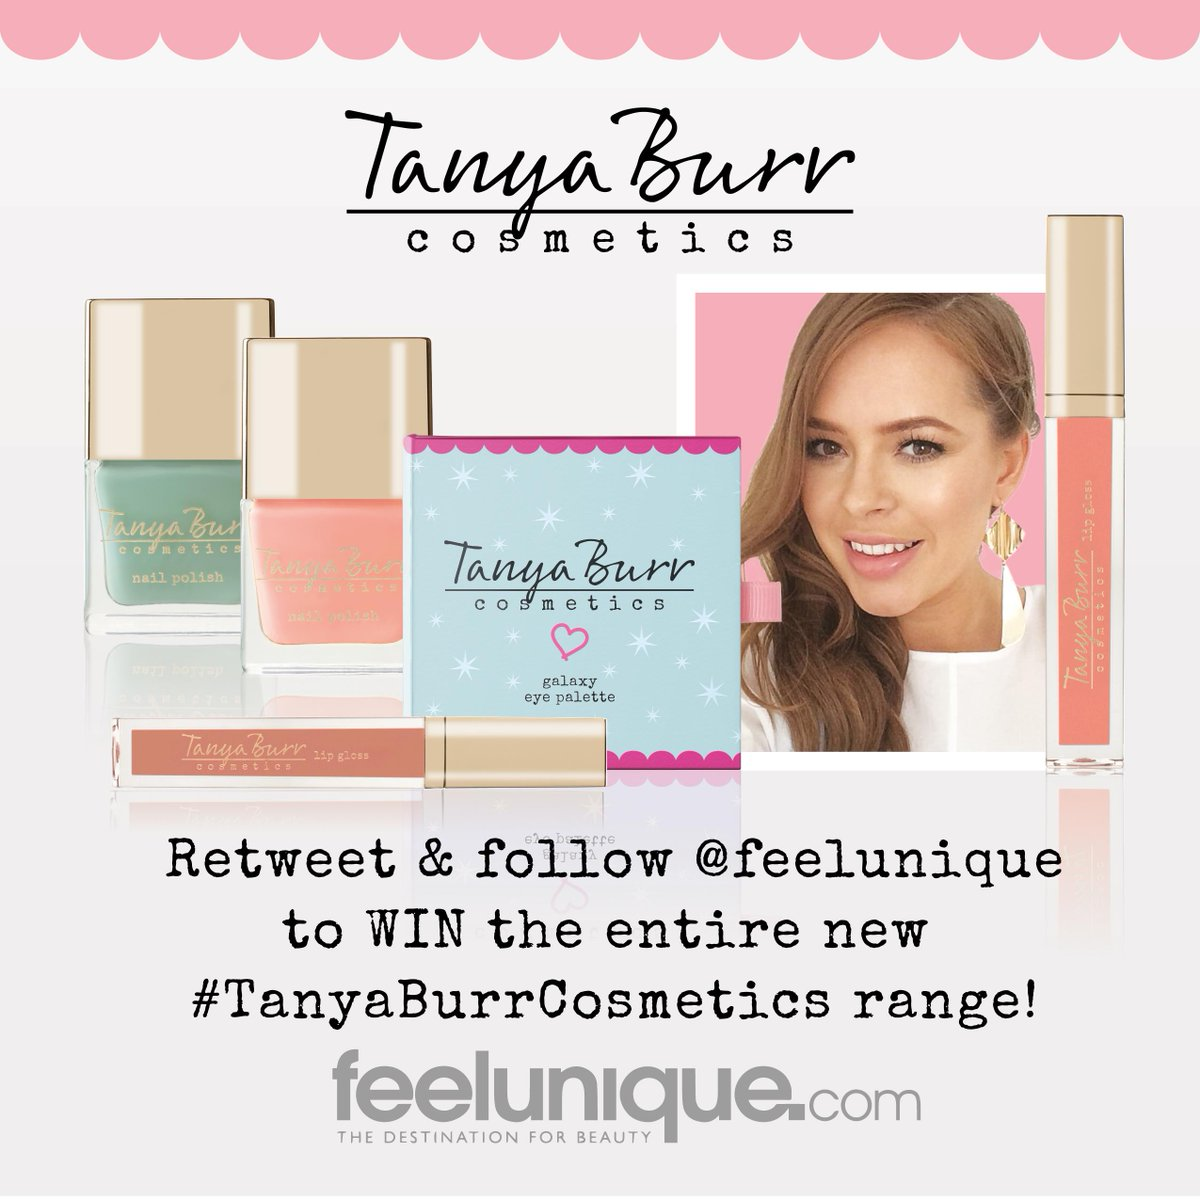 We're giving away 5 full sets of the new #TanyaBurrCosmetics range! Just RETWEET & FOLLOW us for the chance to #WIN http://t.co/Z0BPTnNjrE